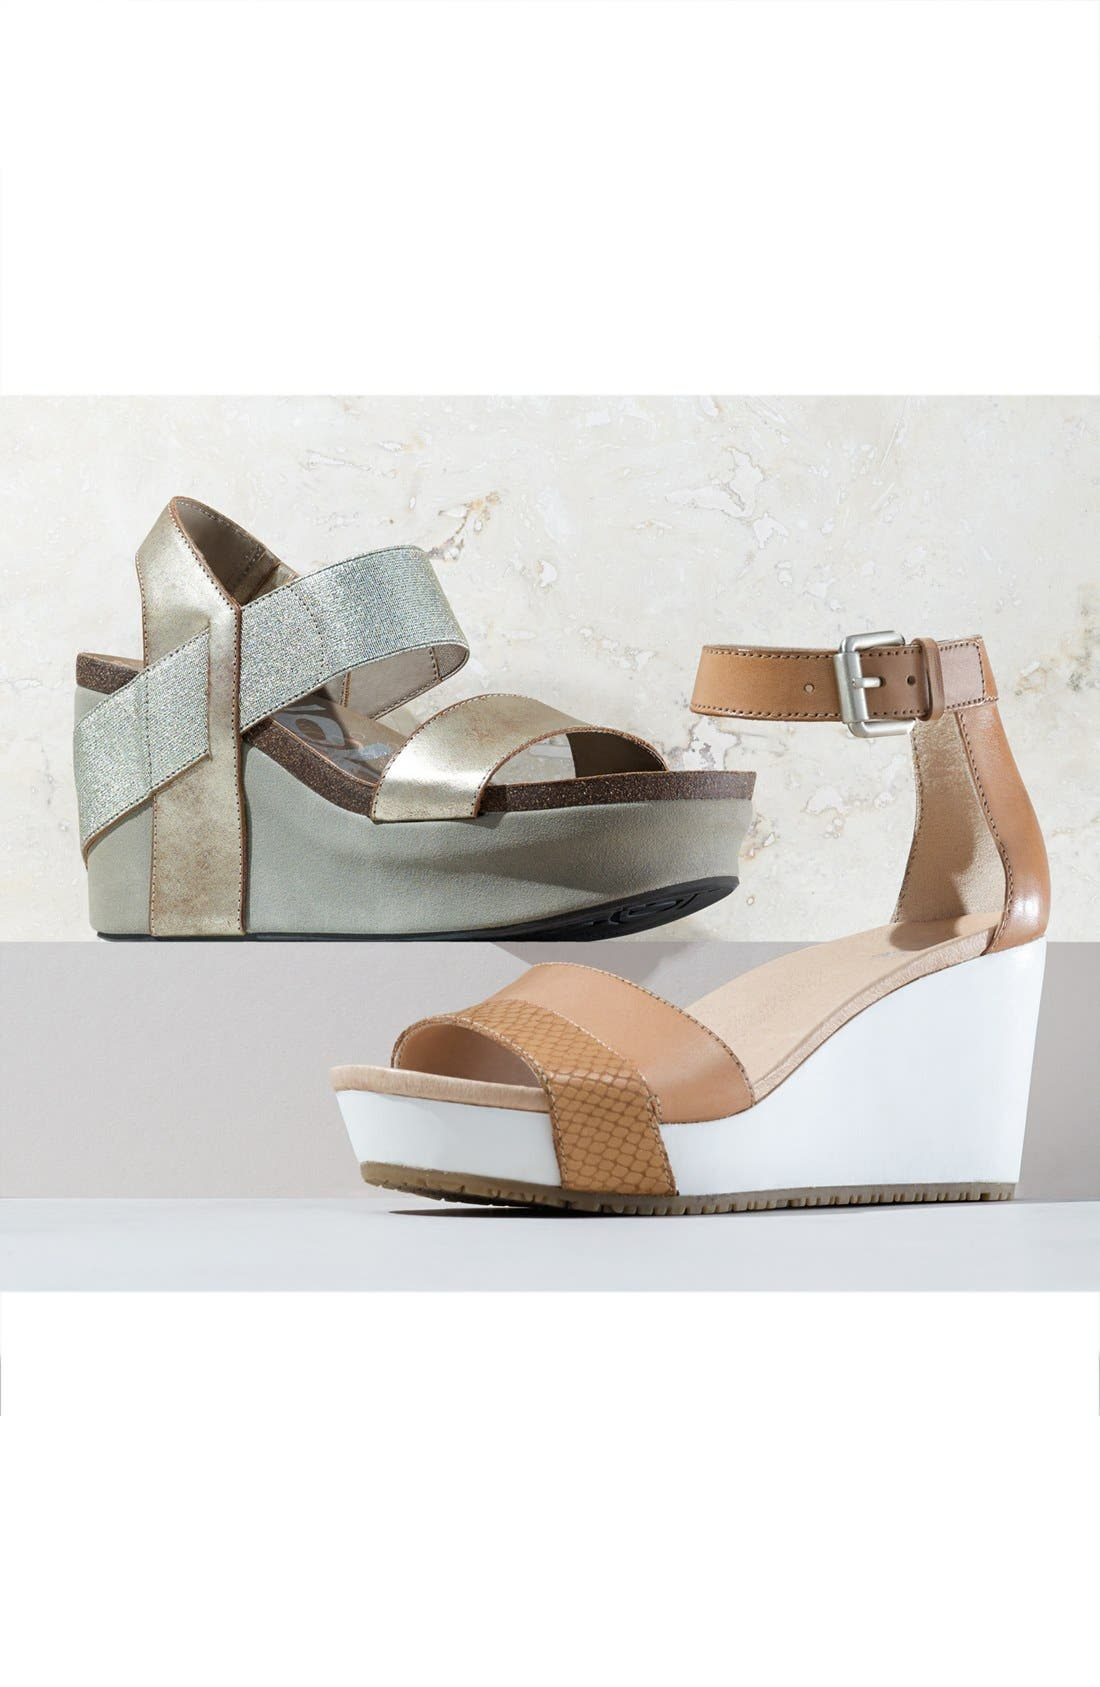 'Bushnell' Wedge Sandal,                             Alternate thumbnail 5, color,